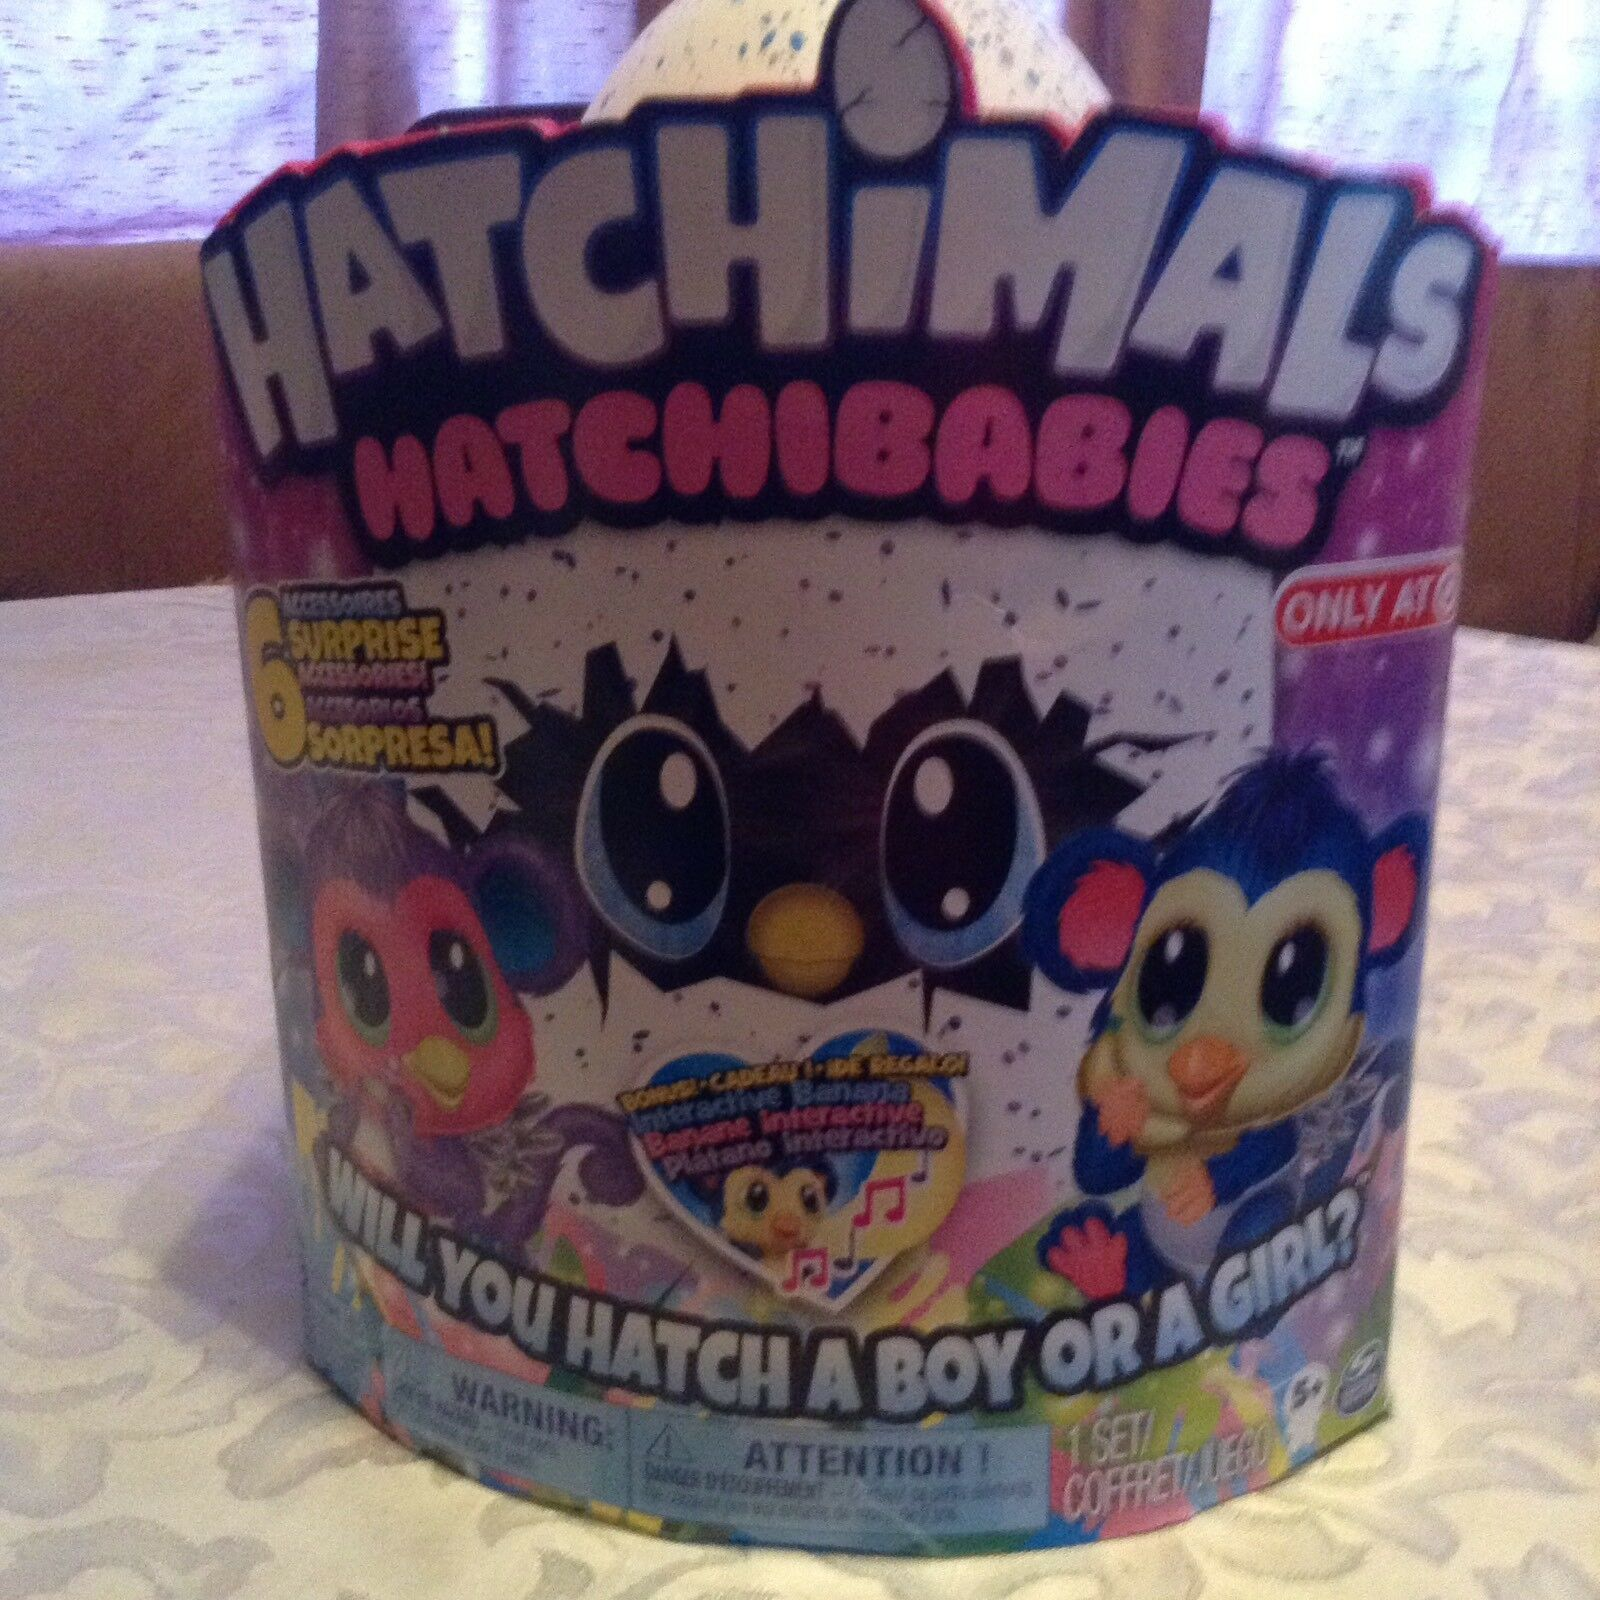 Hatchimals Hatchibabies Monkiwi hatching egg Target exclusive New